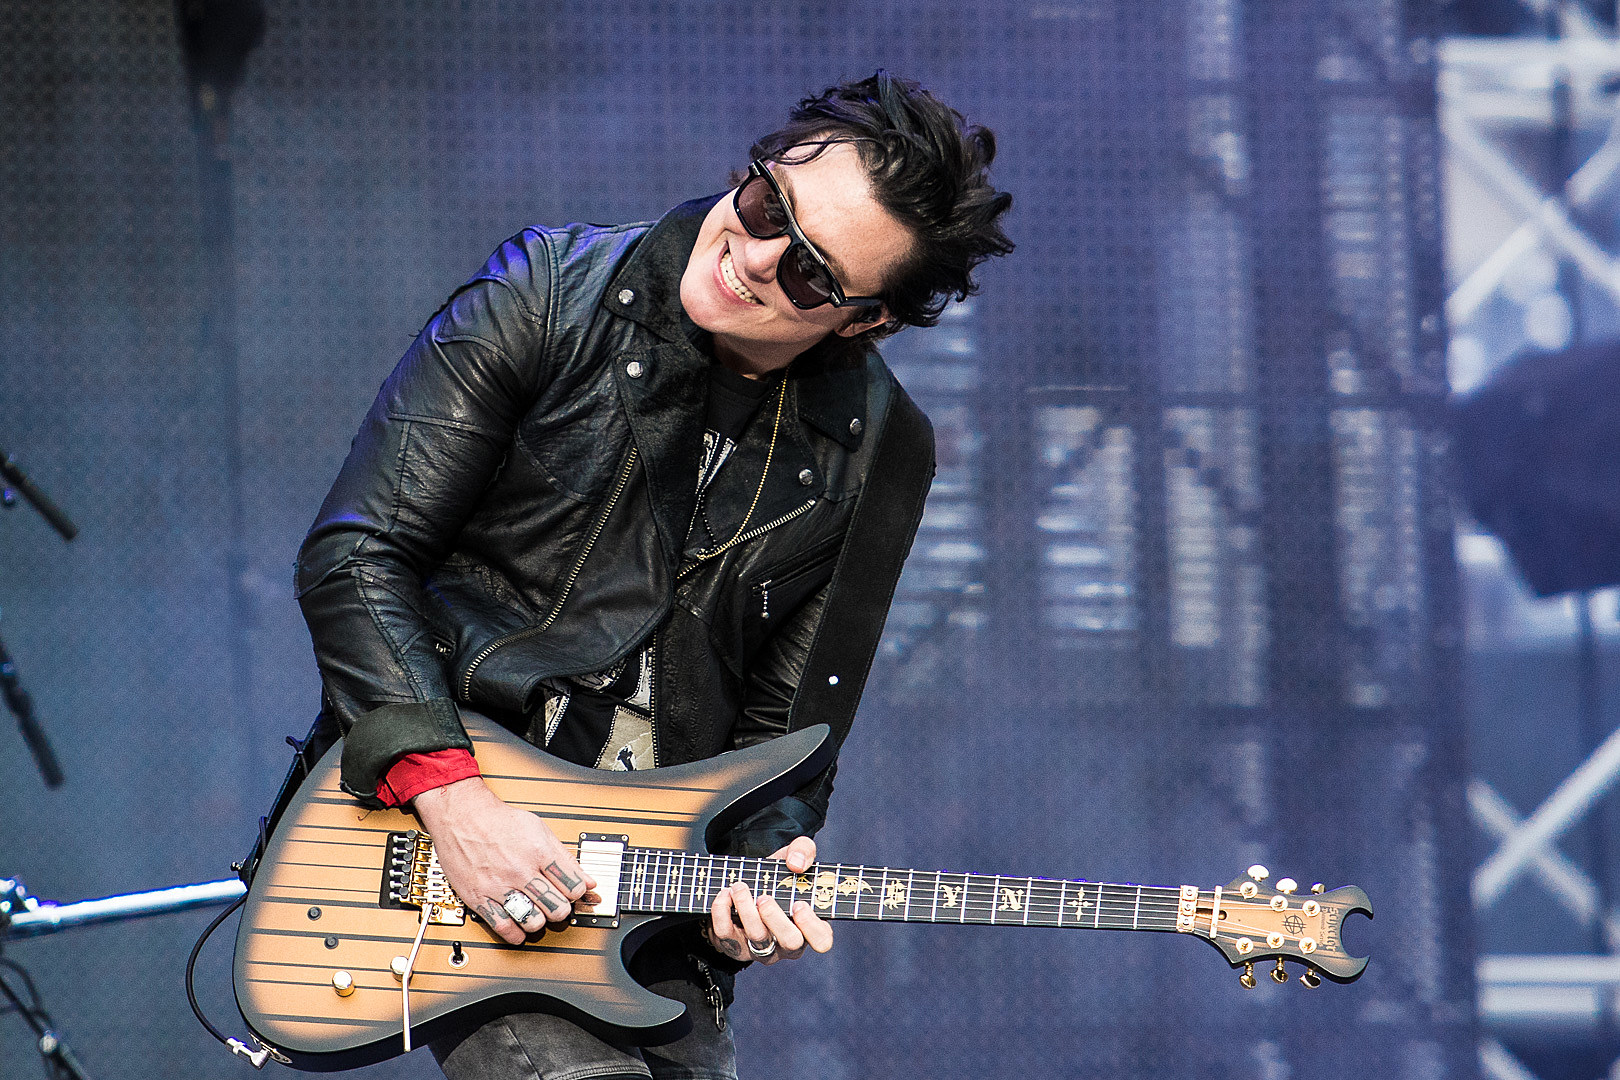 Synyster gates introduces synyster gates online guitar school solutioingenieria Gallery